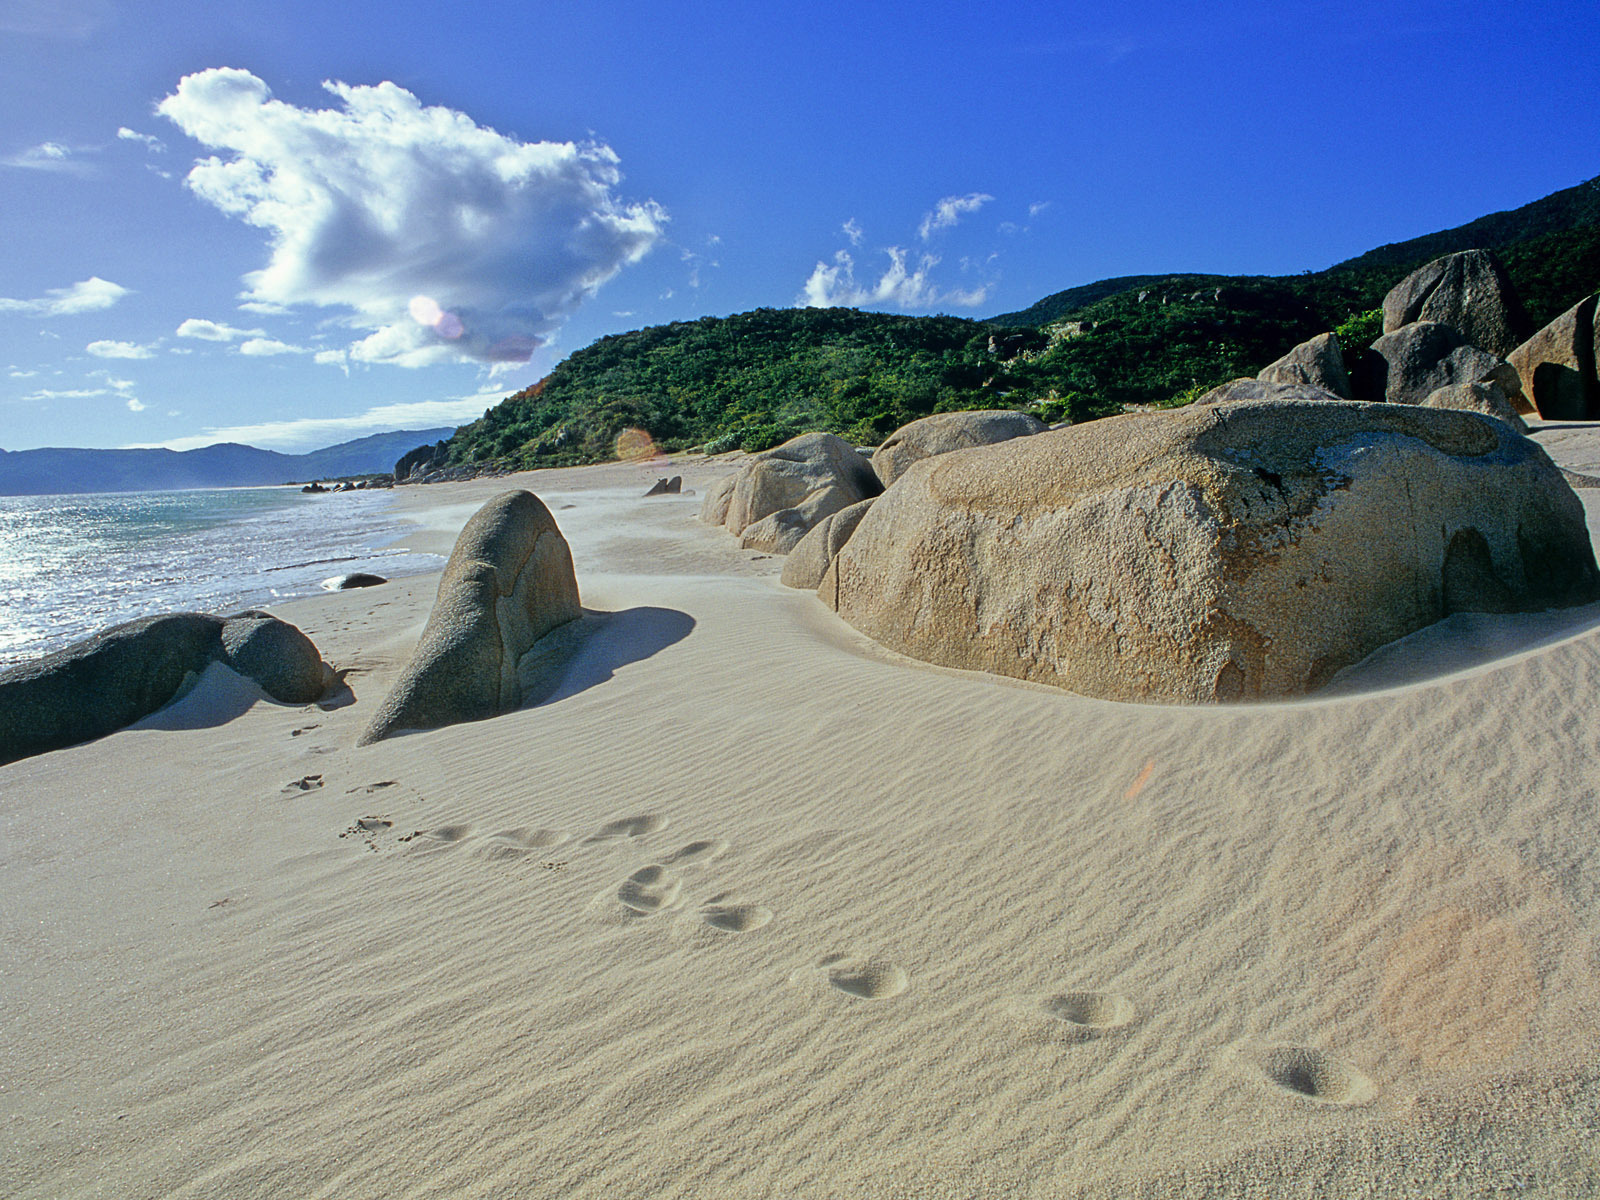 beach at yalong bay, in sanya, china